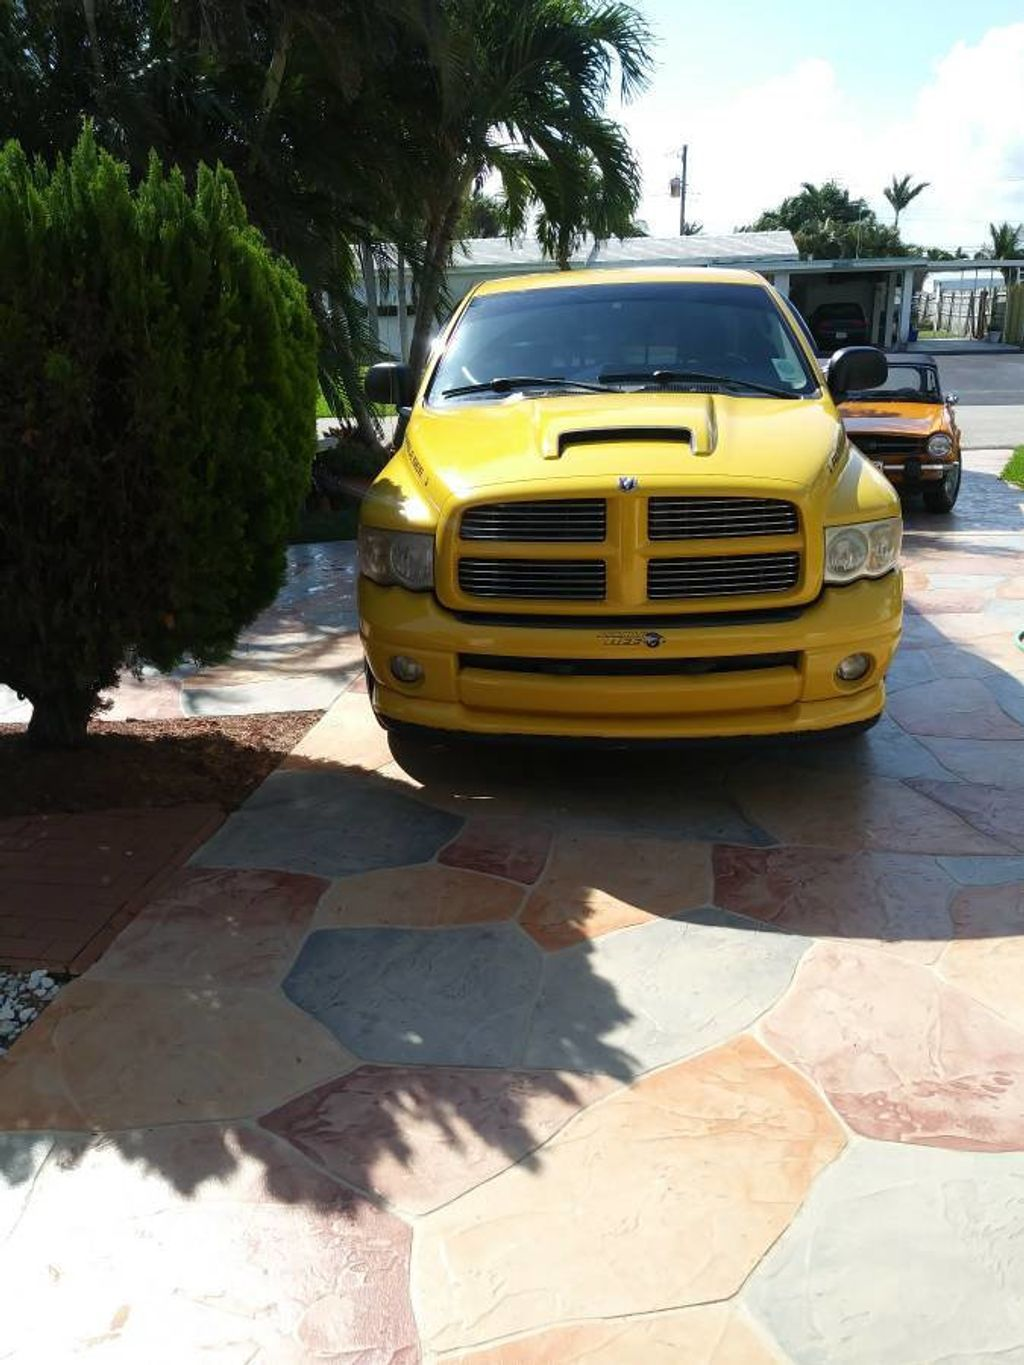 2005 Dodge Ram 1500 Rumble Bee Limited Edition For Sale - 17386933 - 1